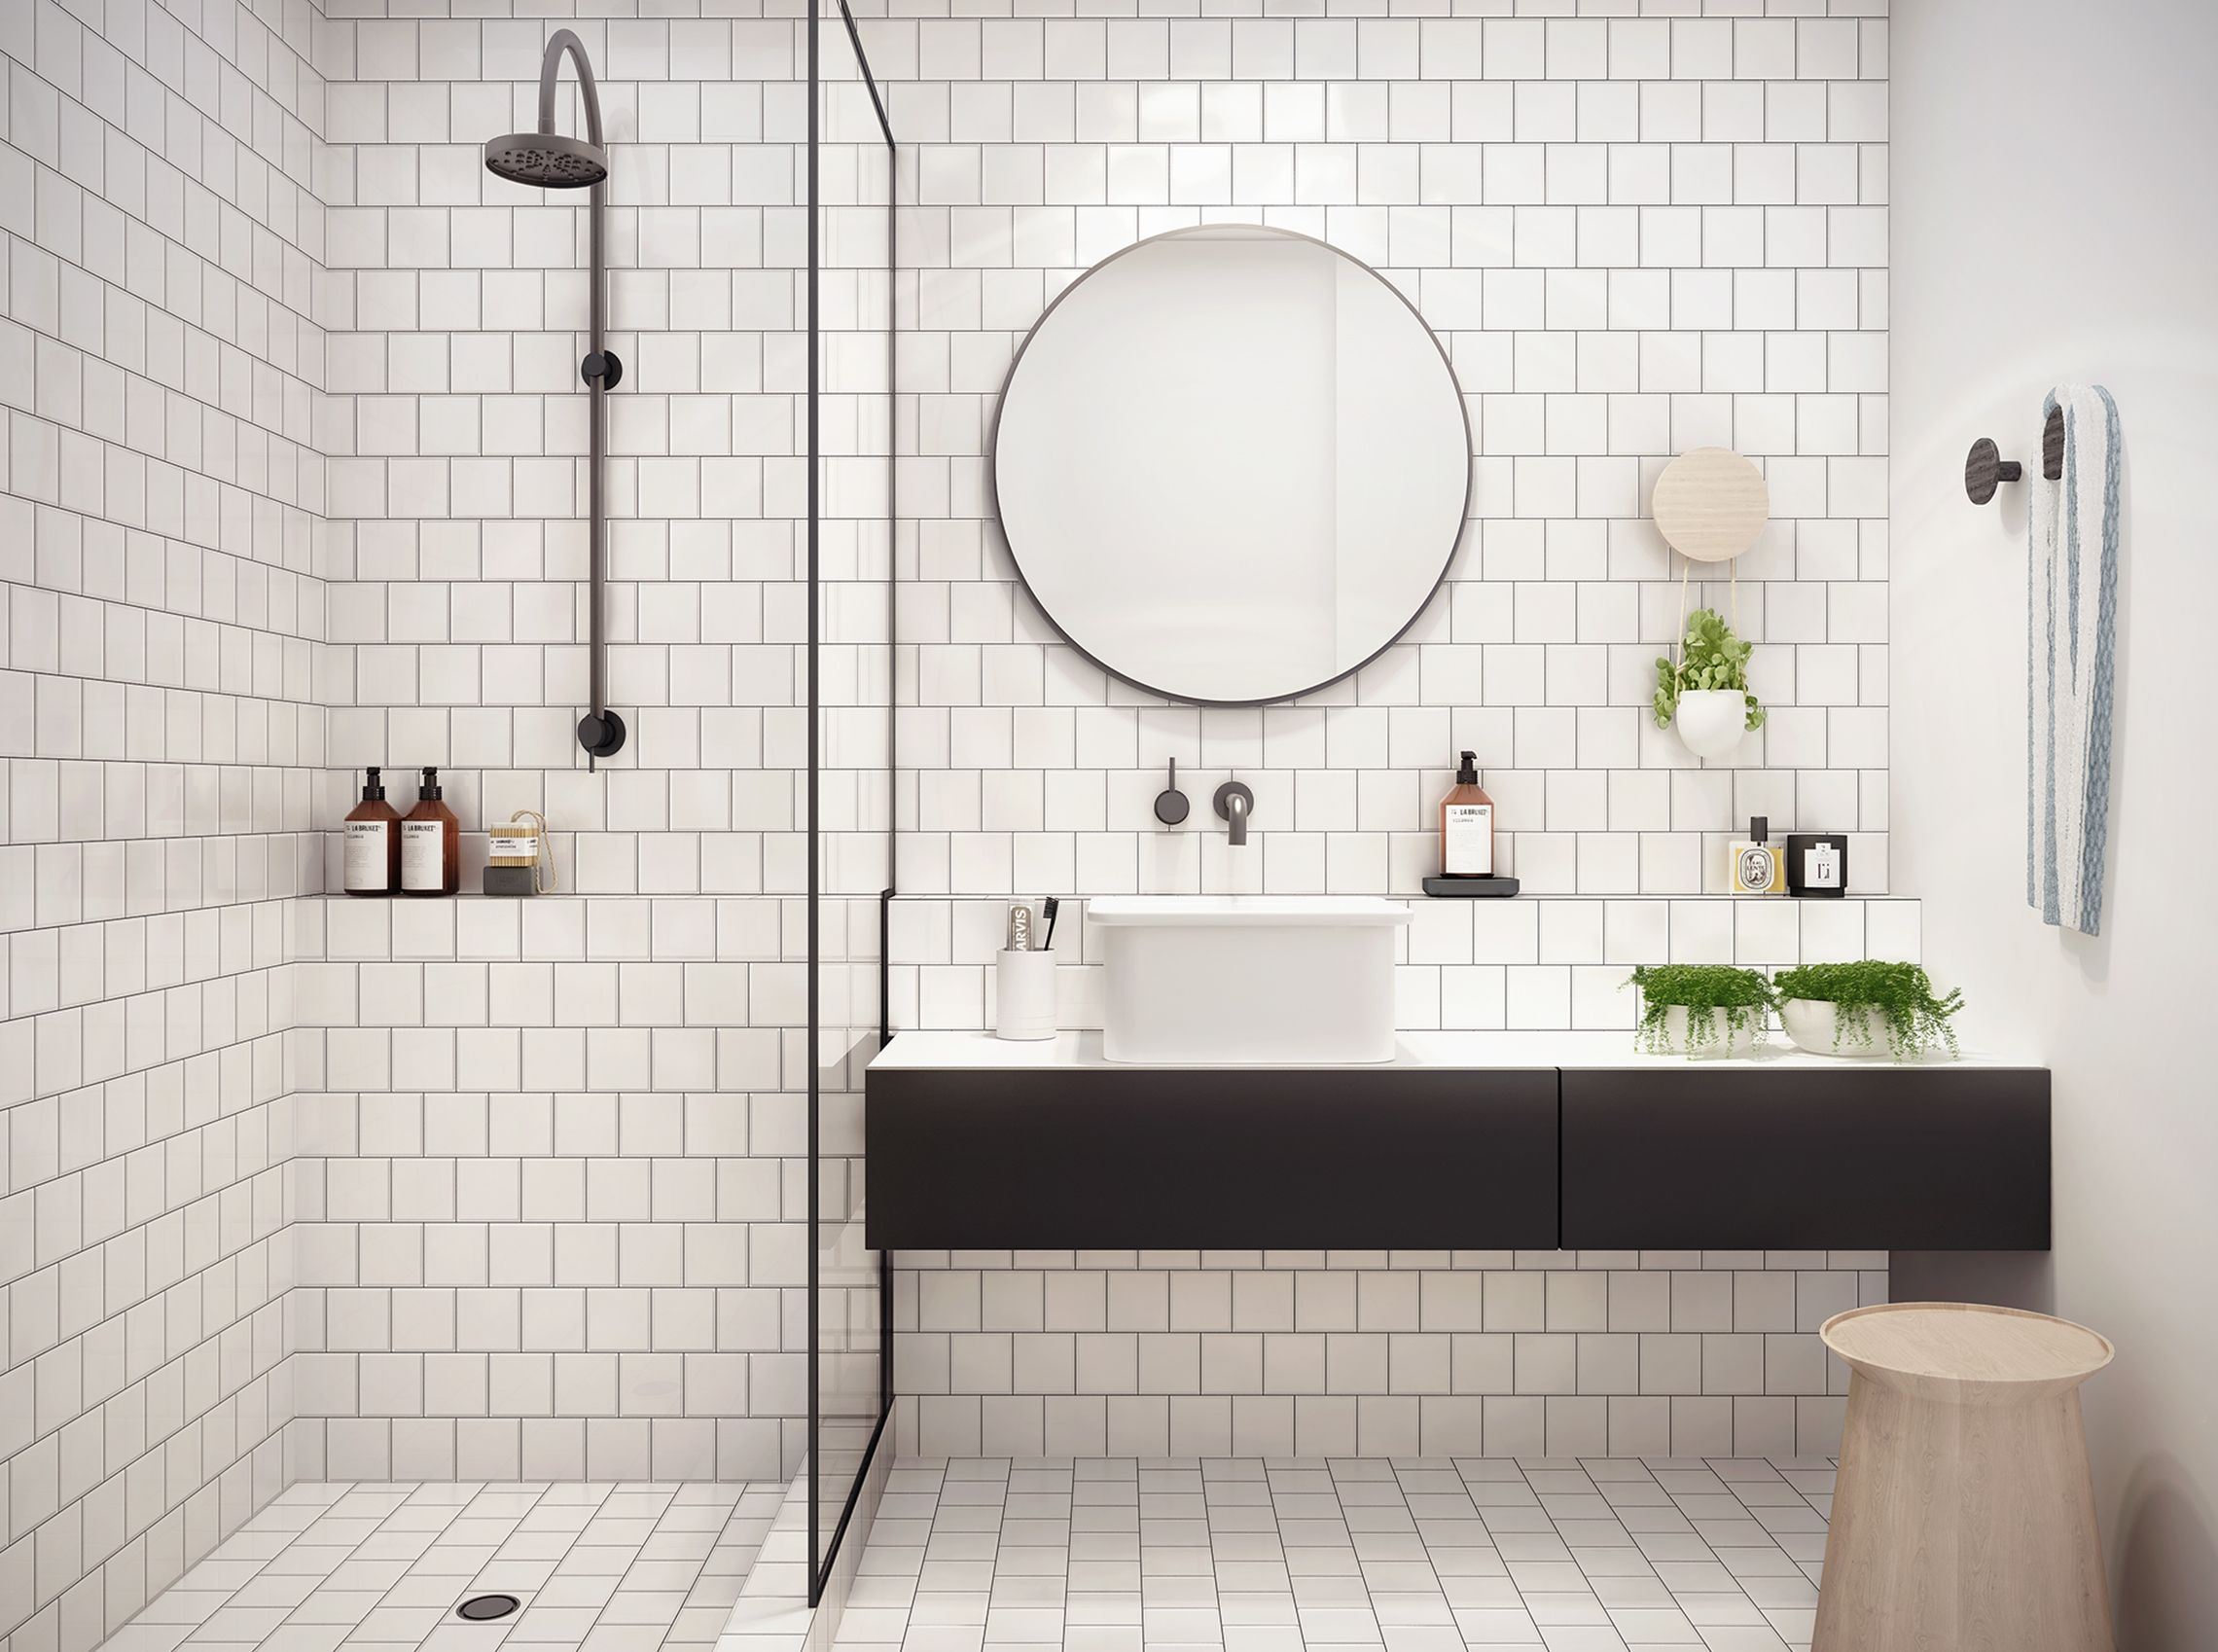 White tiles #bathroom | Badrum | Pinterest | White tiles, White tile ...